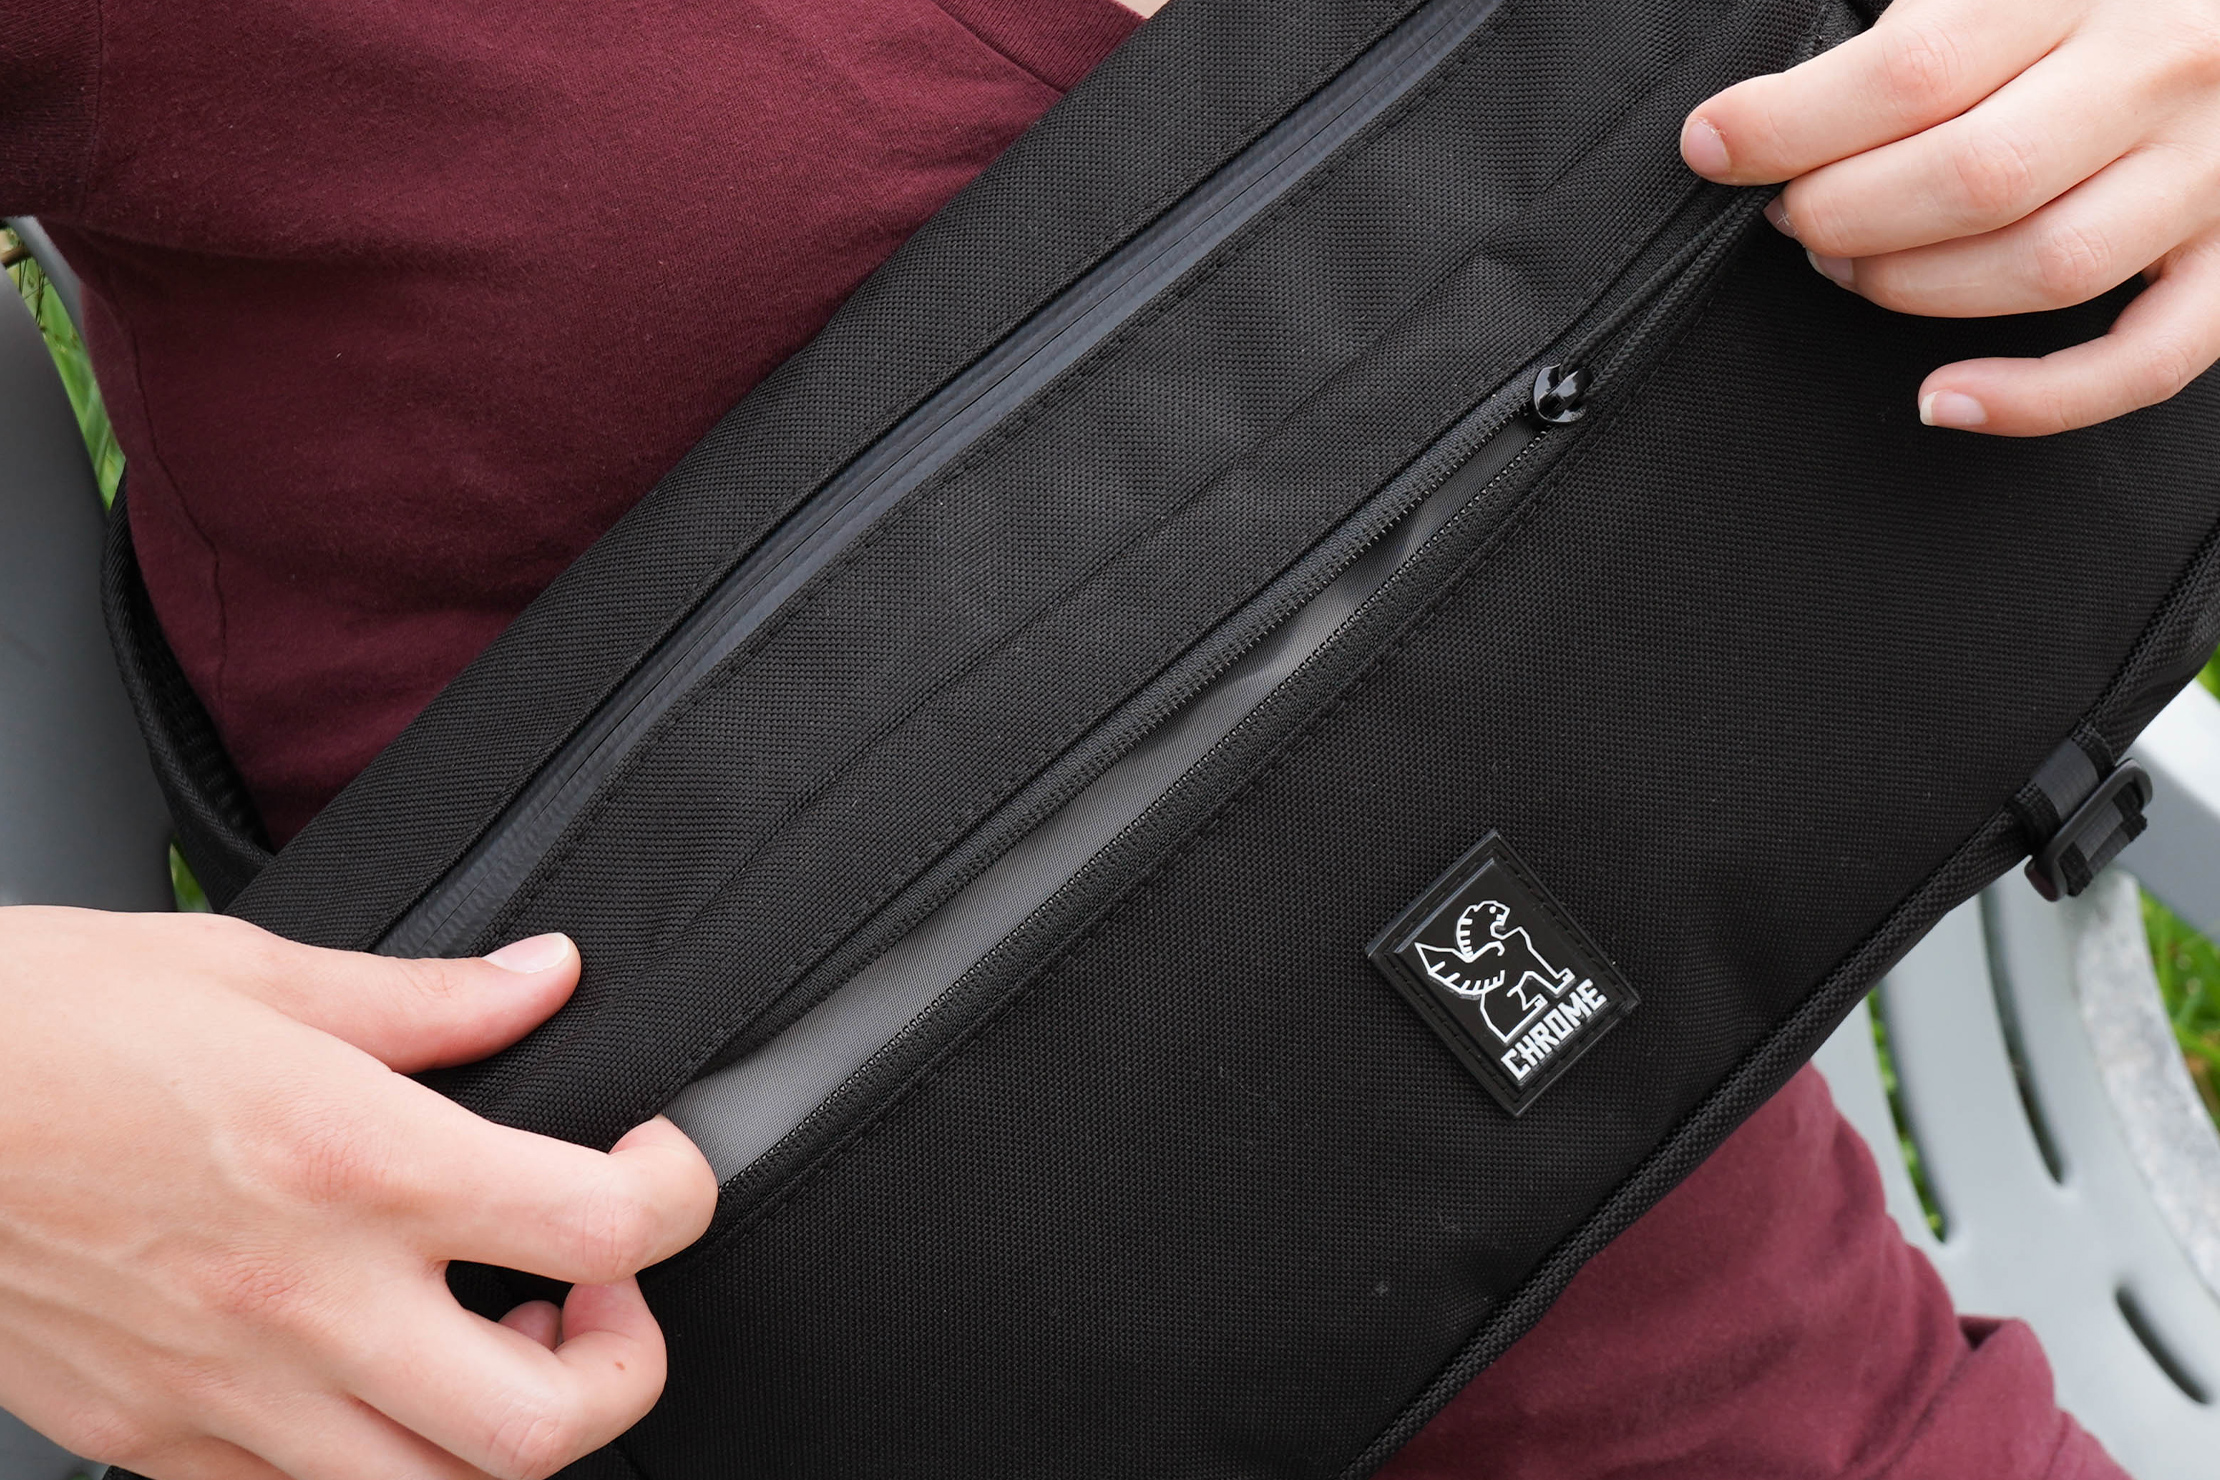 YKK Zipper on the Chrome Industries Kadet Nylon Messenger Bag